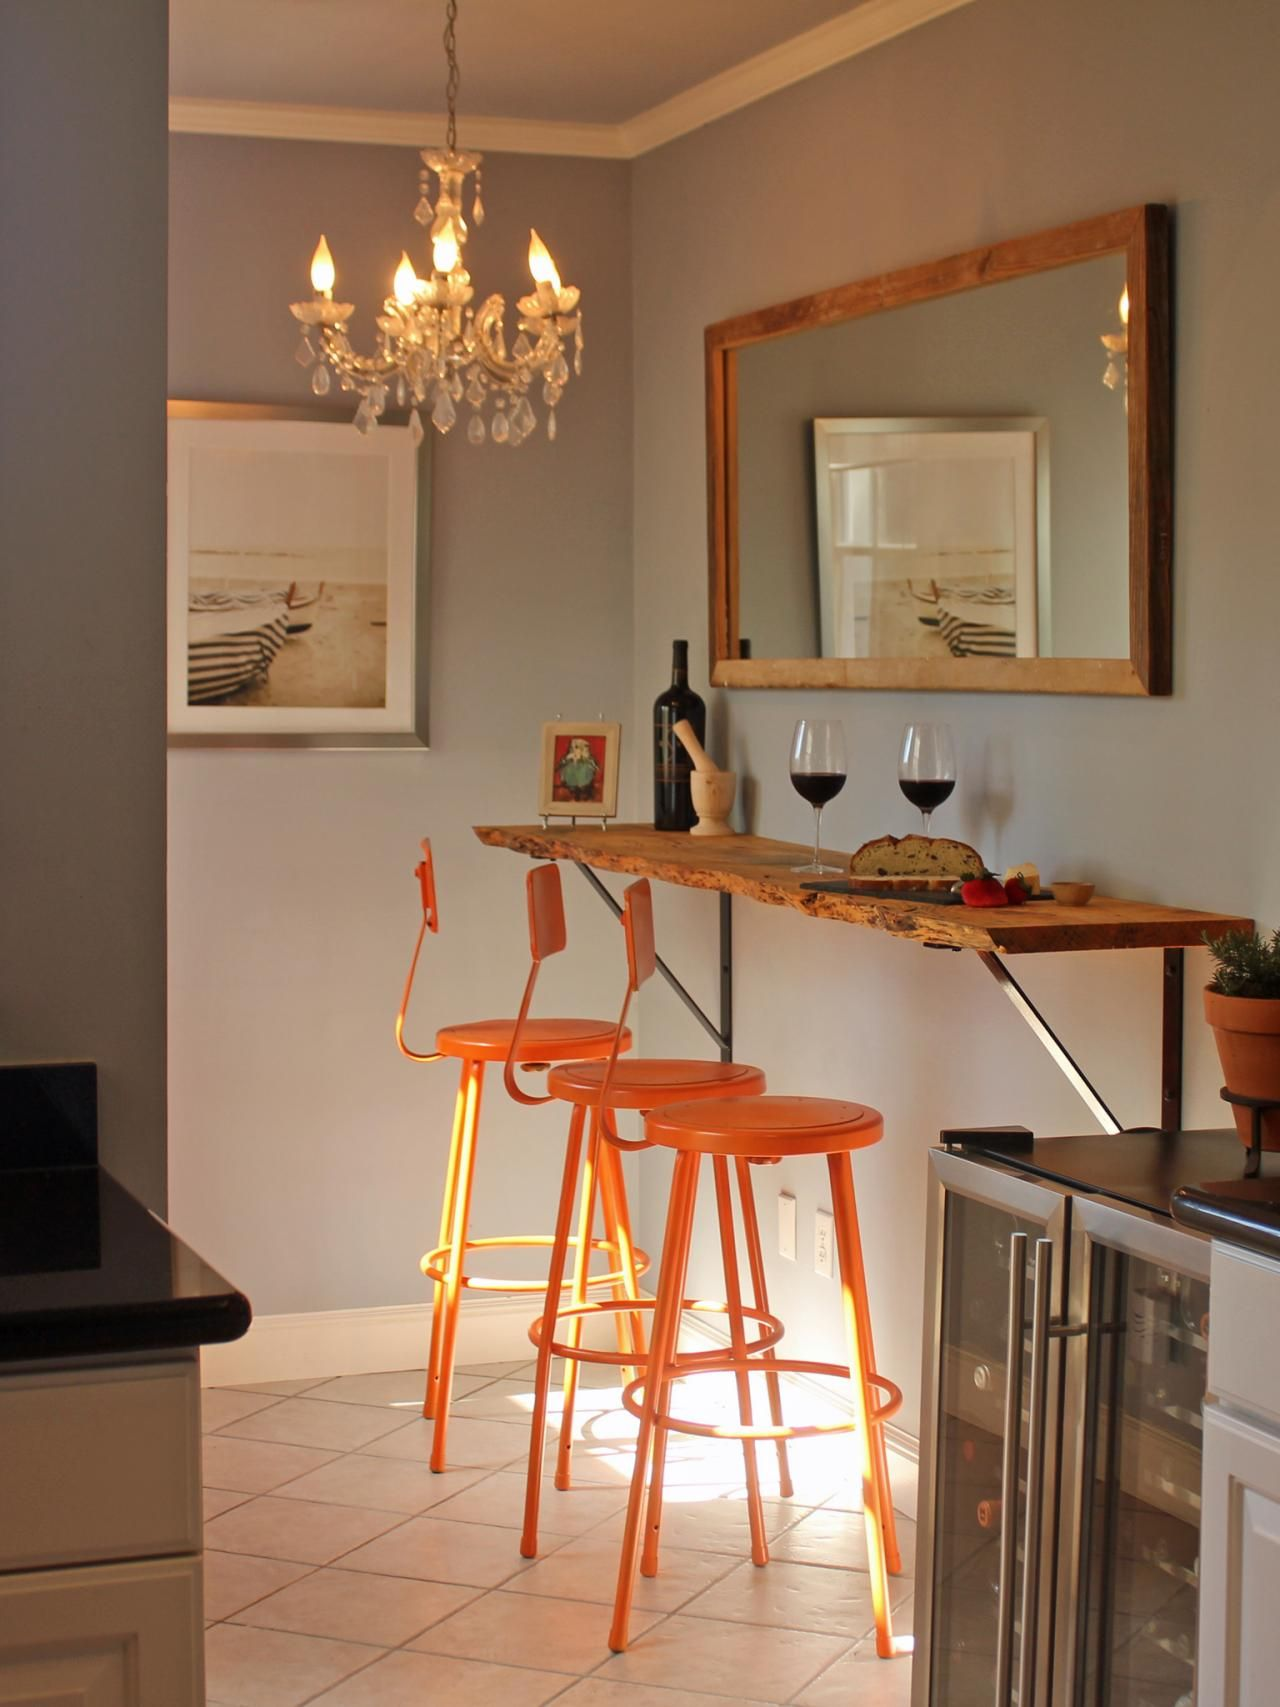 Breakfast Nook For Small Kitchen 20 Tips For Turning Your Small Kitchen Into An Eat In Kitchen